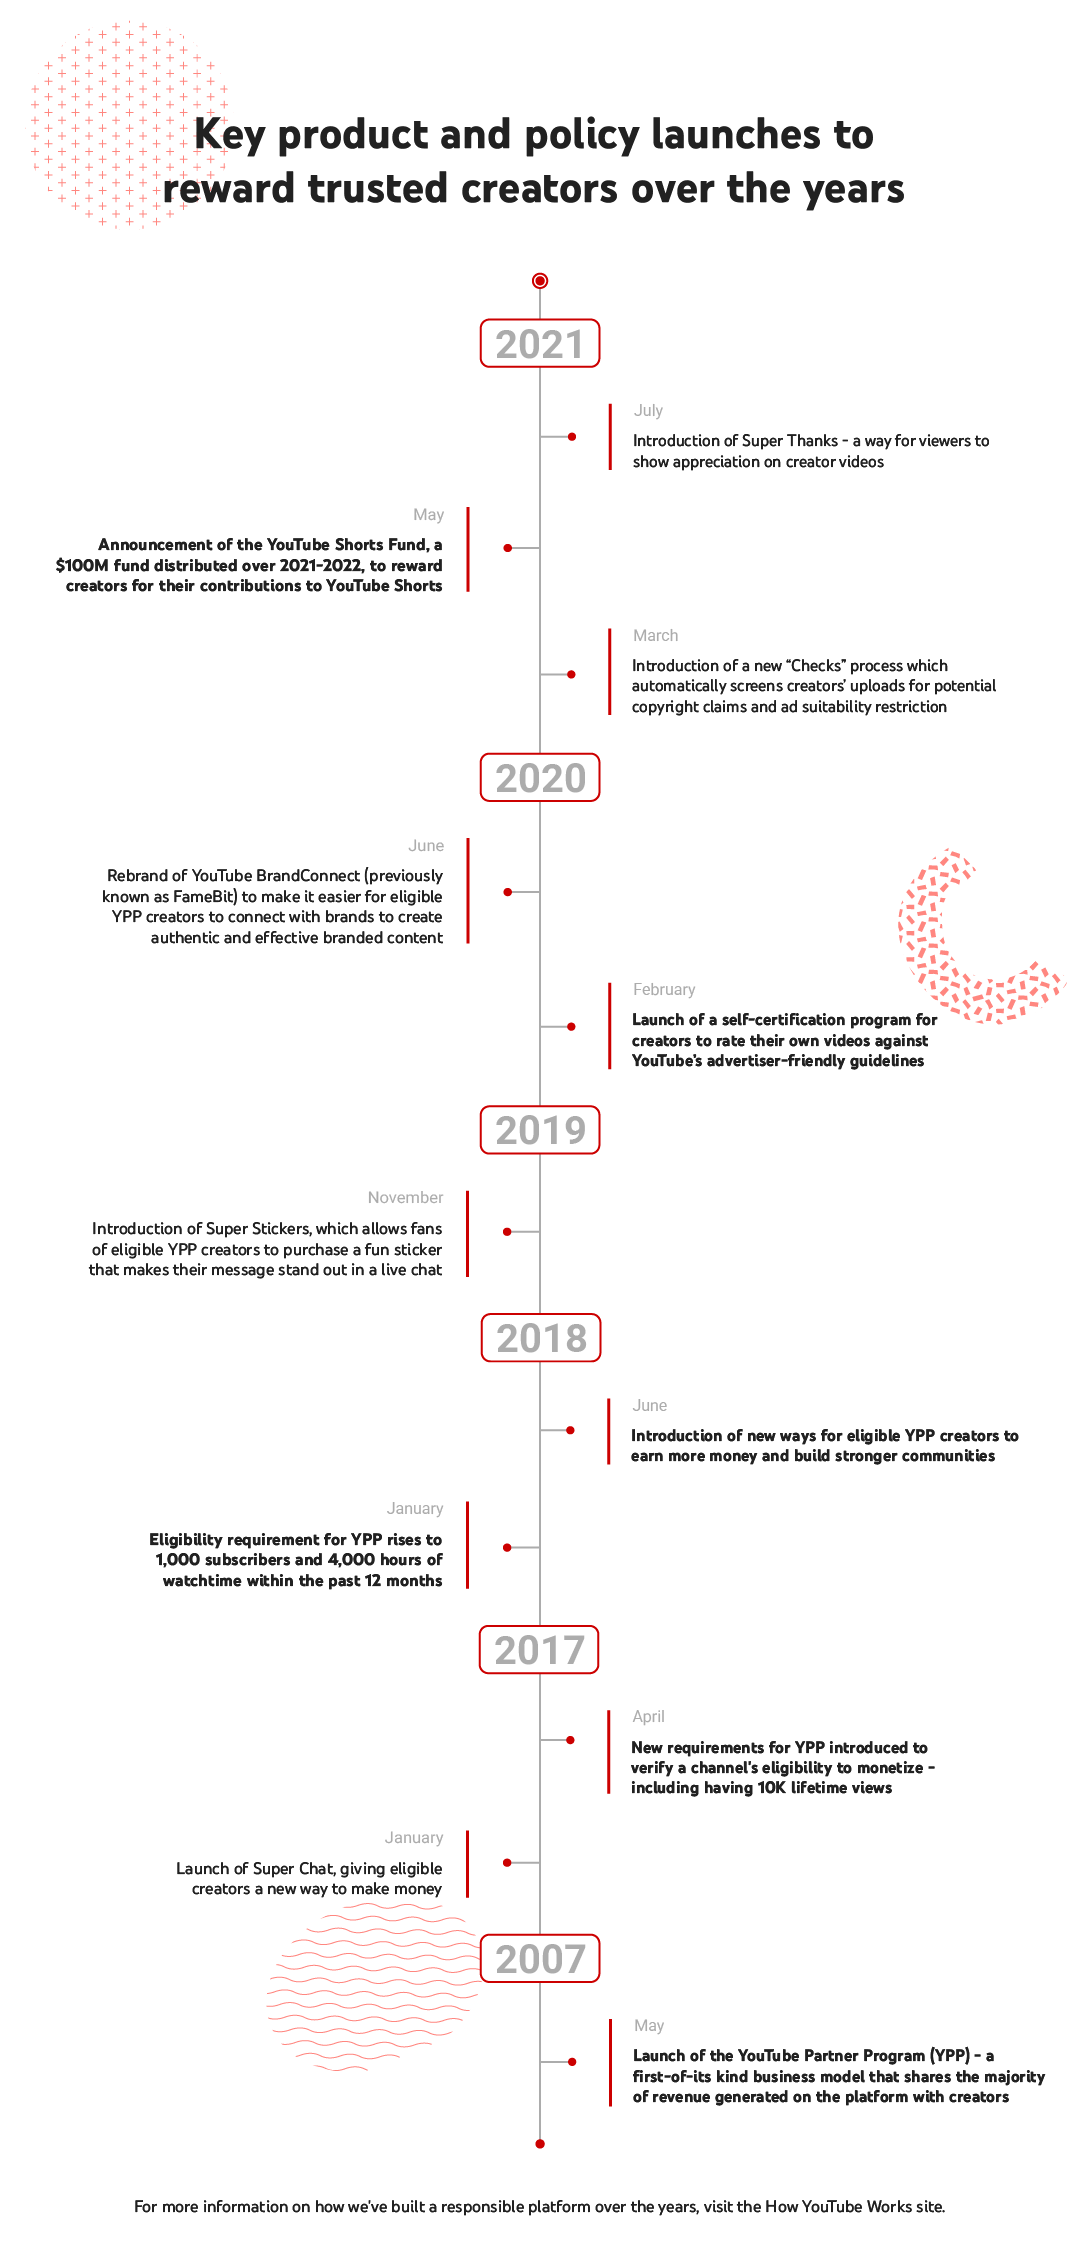 Timeline of key policies and product launches to reward trusted creators over the years